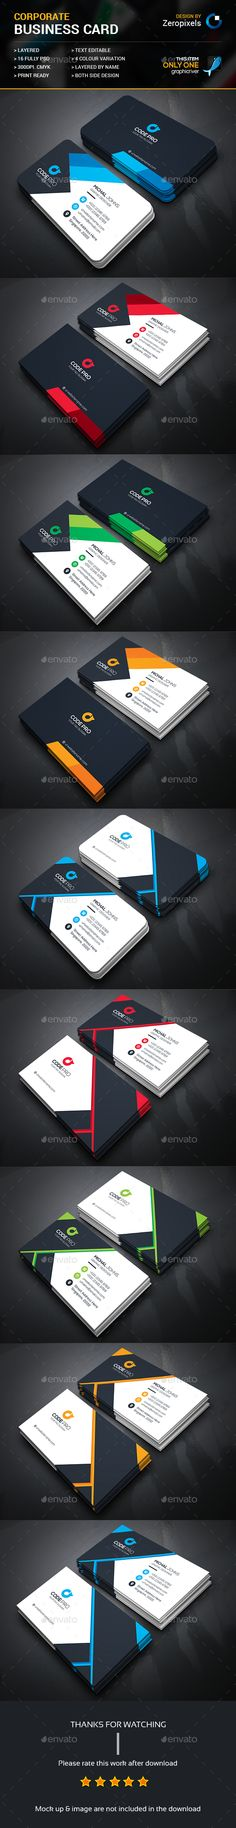 Corporate Business Card Bundle Templates PSD. Download here: http://graphicriver.net/item/corporate-business-card-bundle/16341011?ref=ksioks